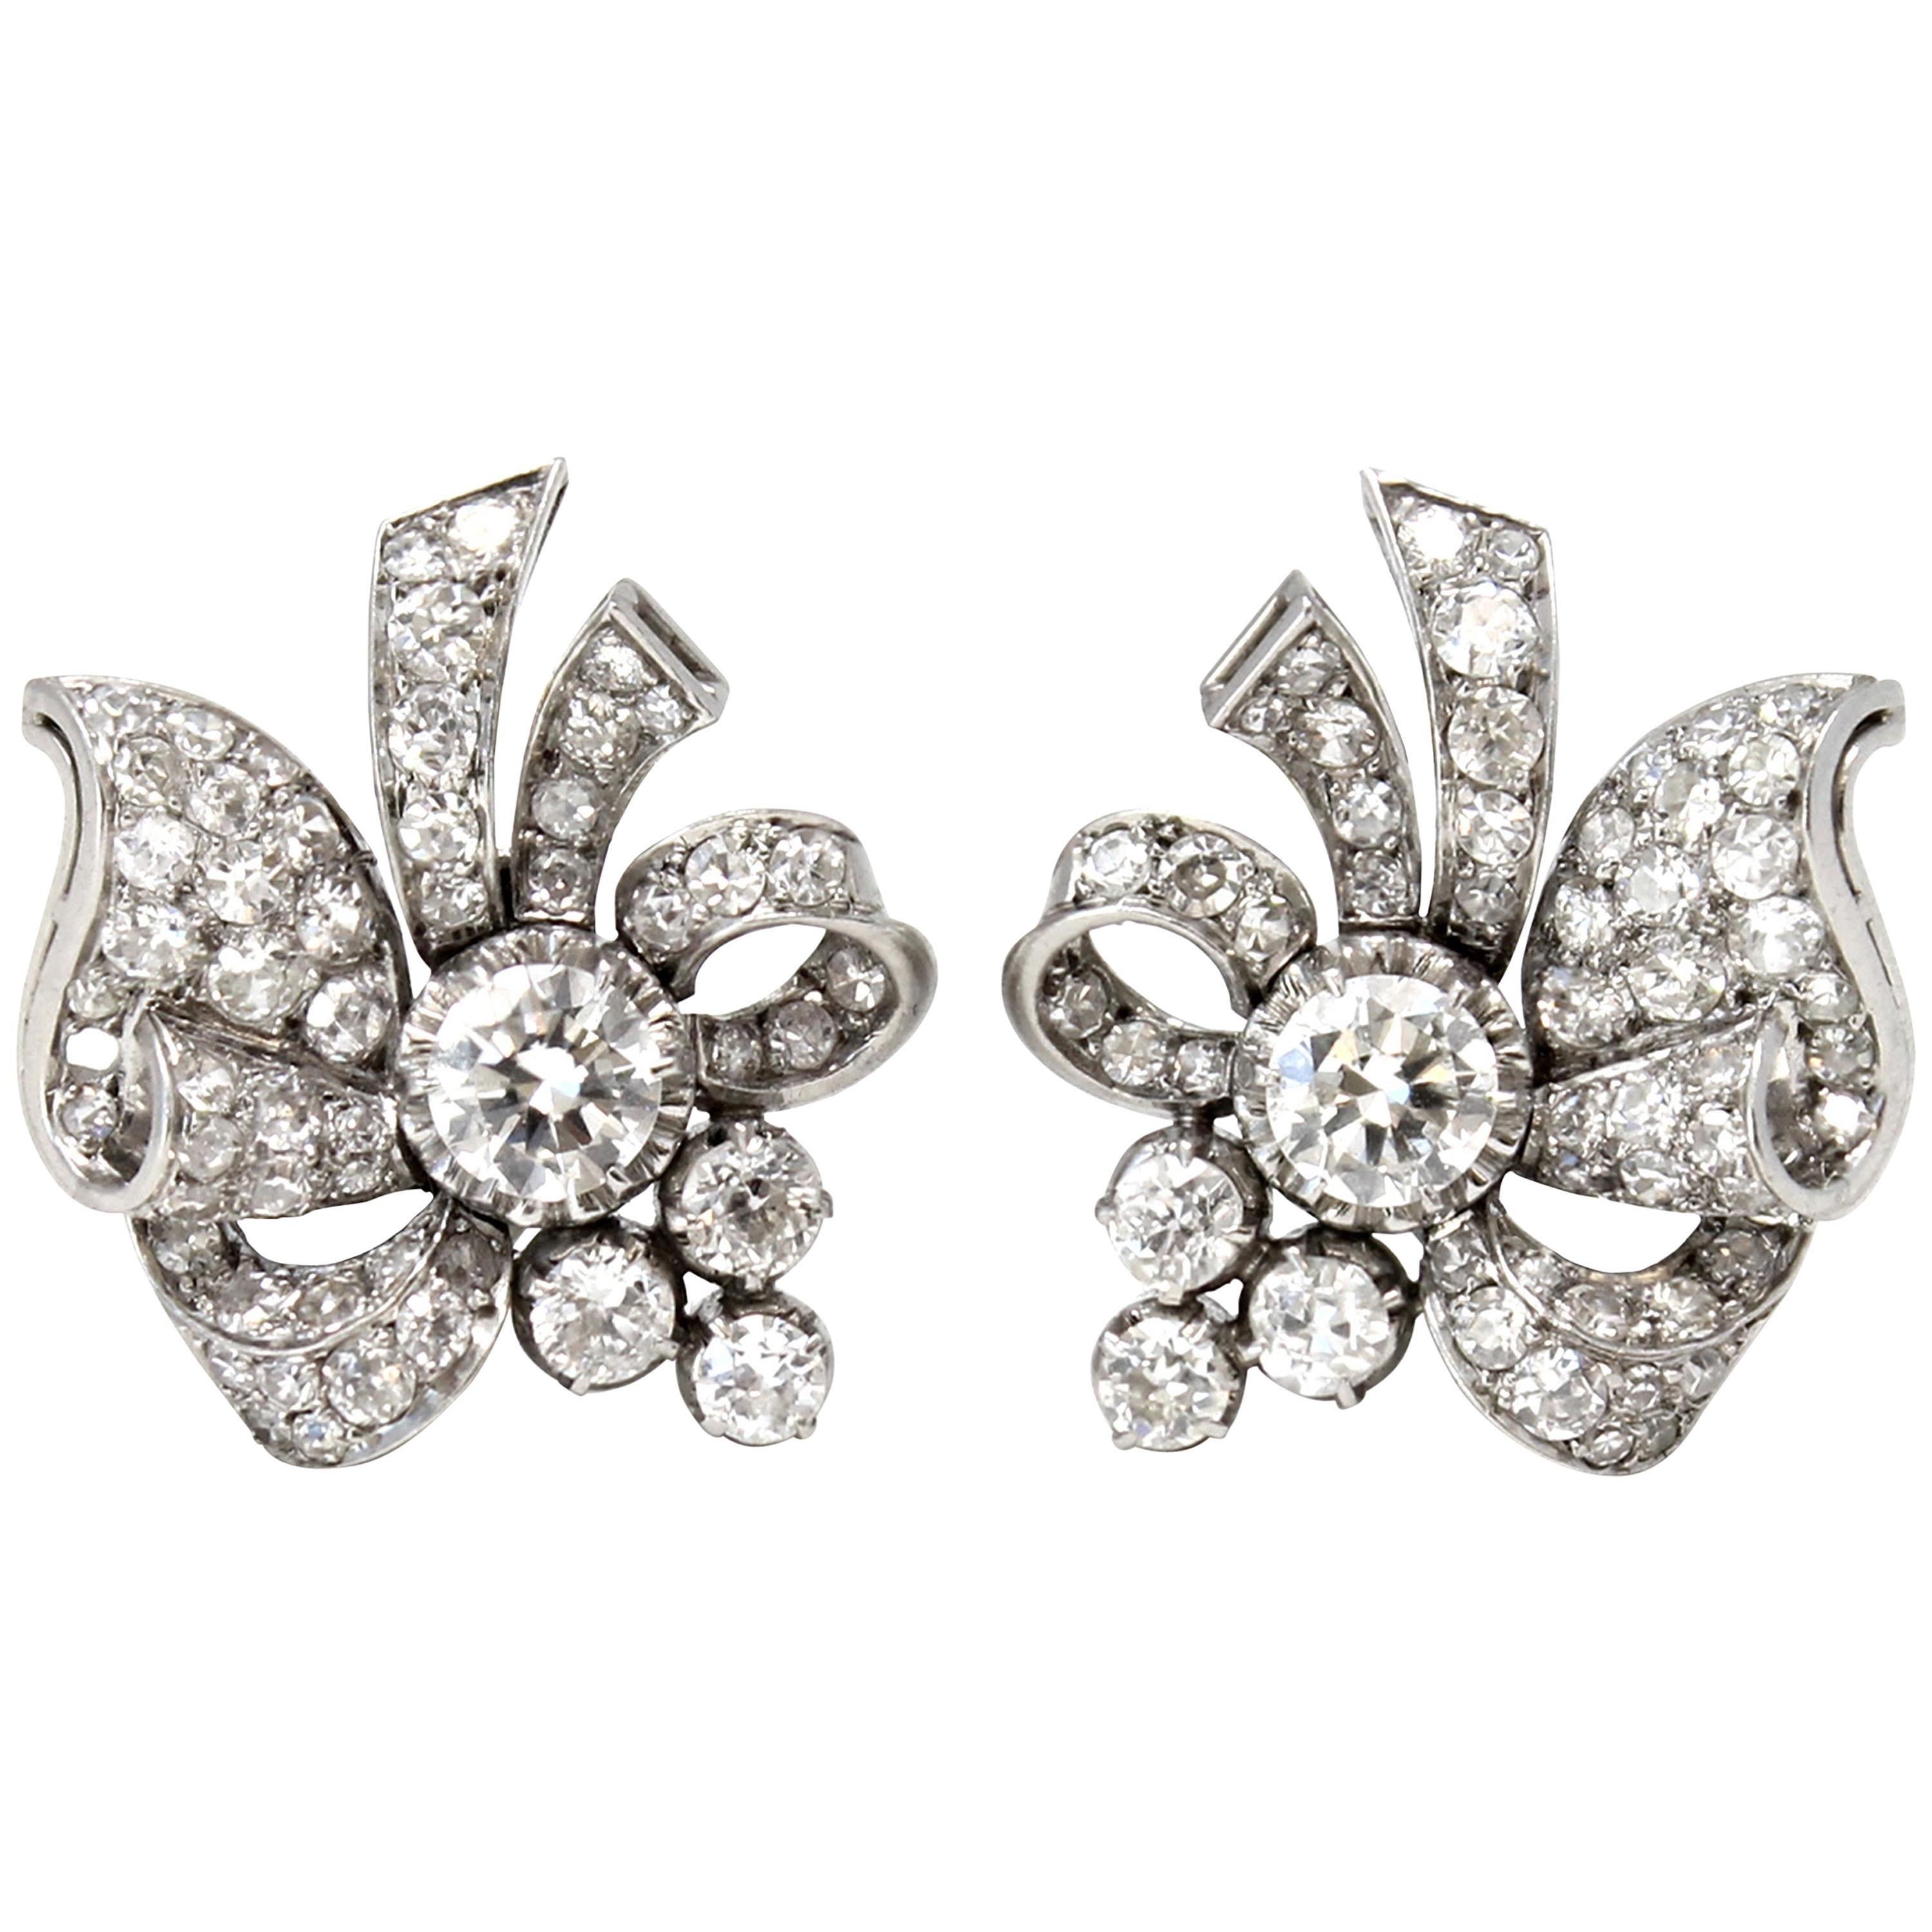 Pair of 1940s Vintage Platinum and 3.50 Carat Diamond Clip Earrings with Scrolls